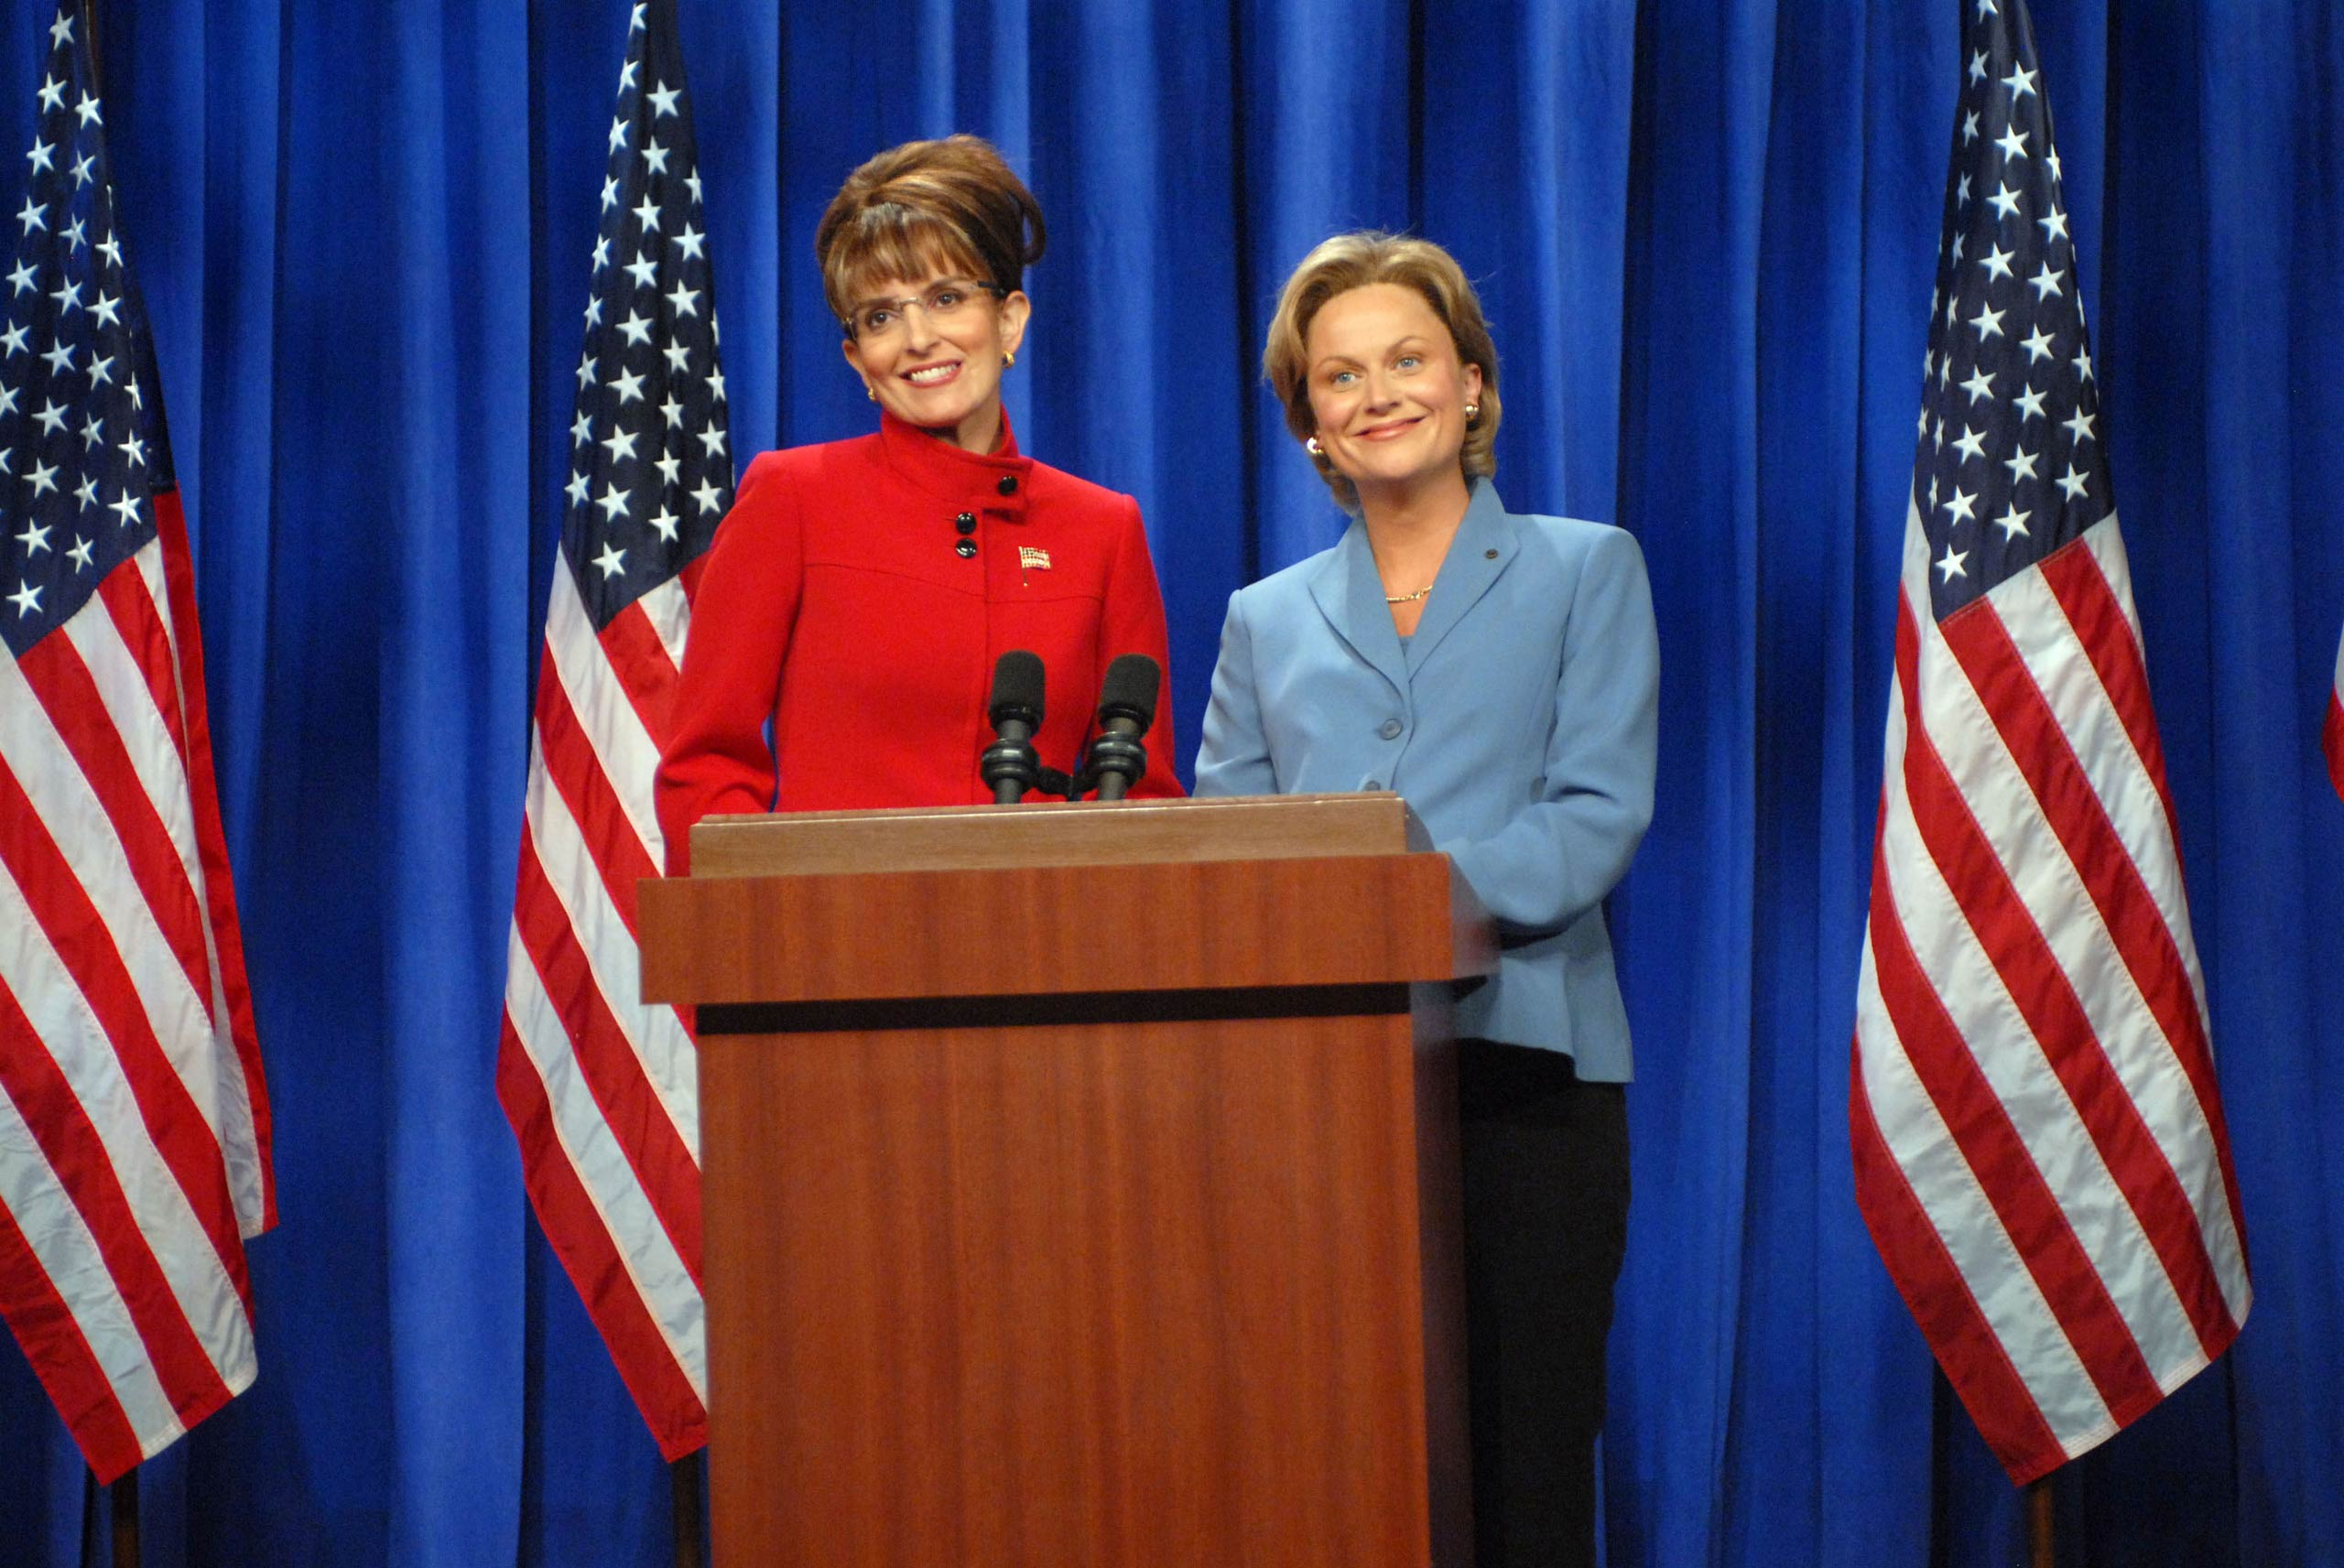 From left: Tina Fey as Governor Sarah Palin and Amy Poehler as Senator Hillary Clinton in 2008.